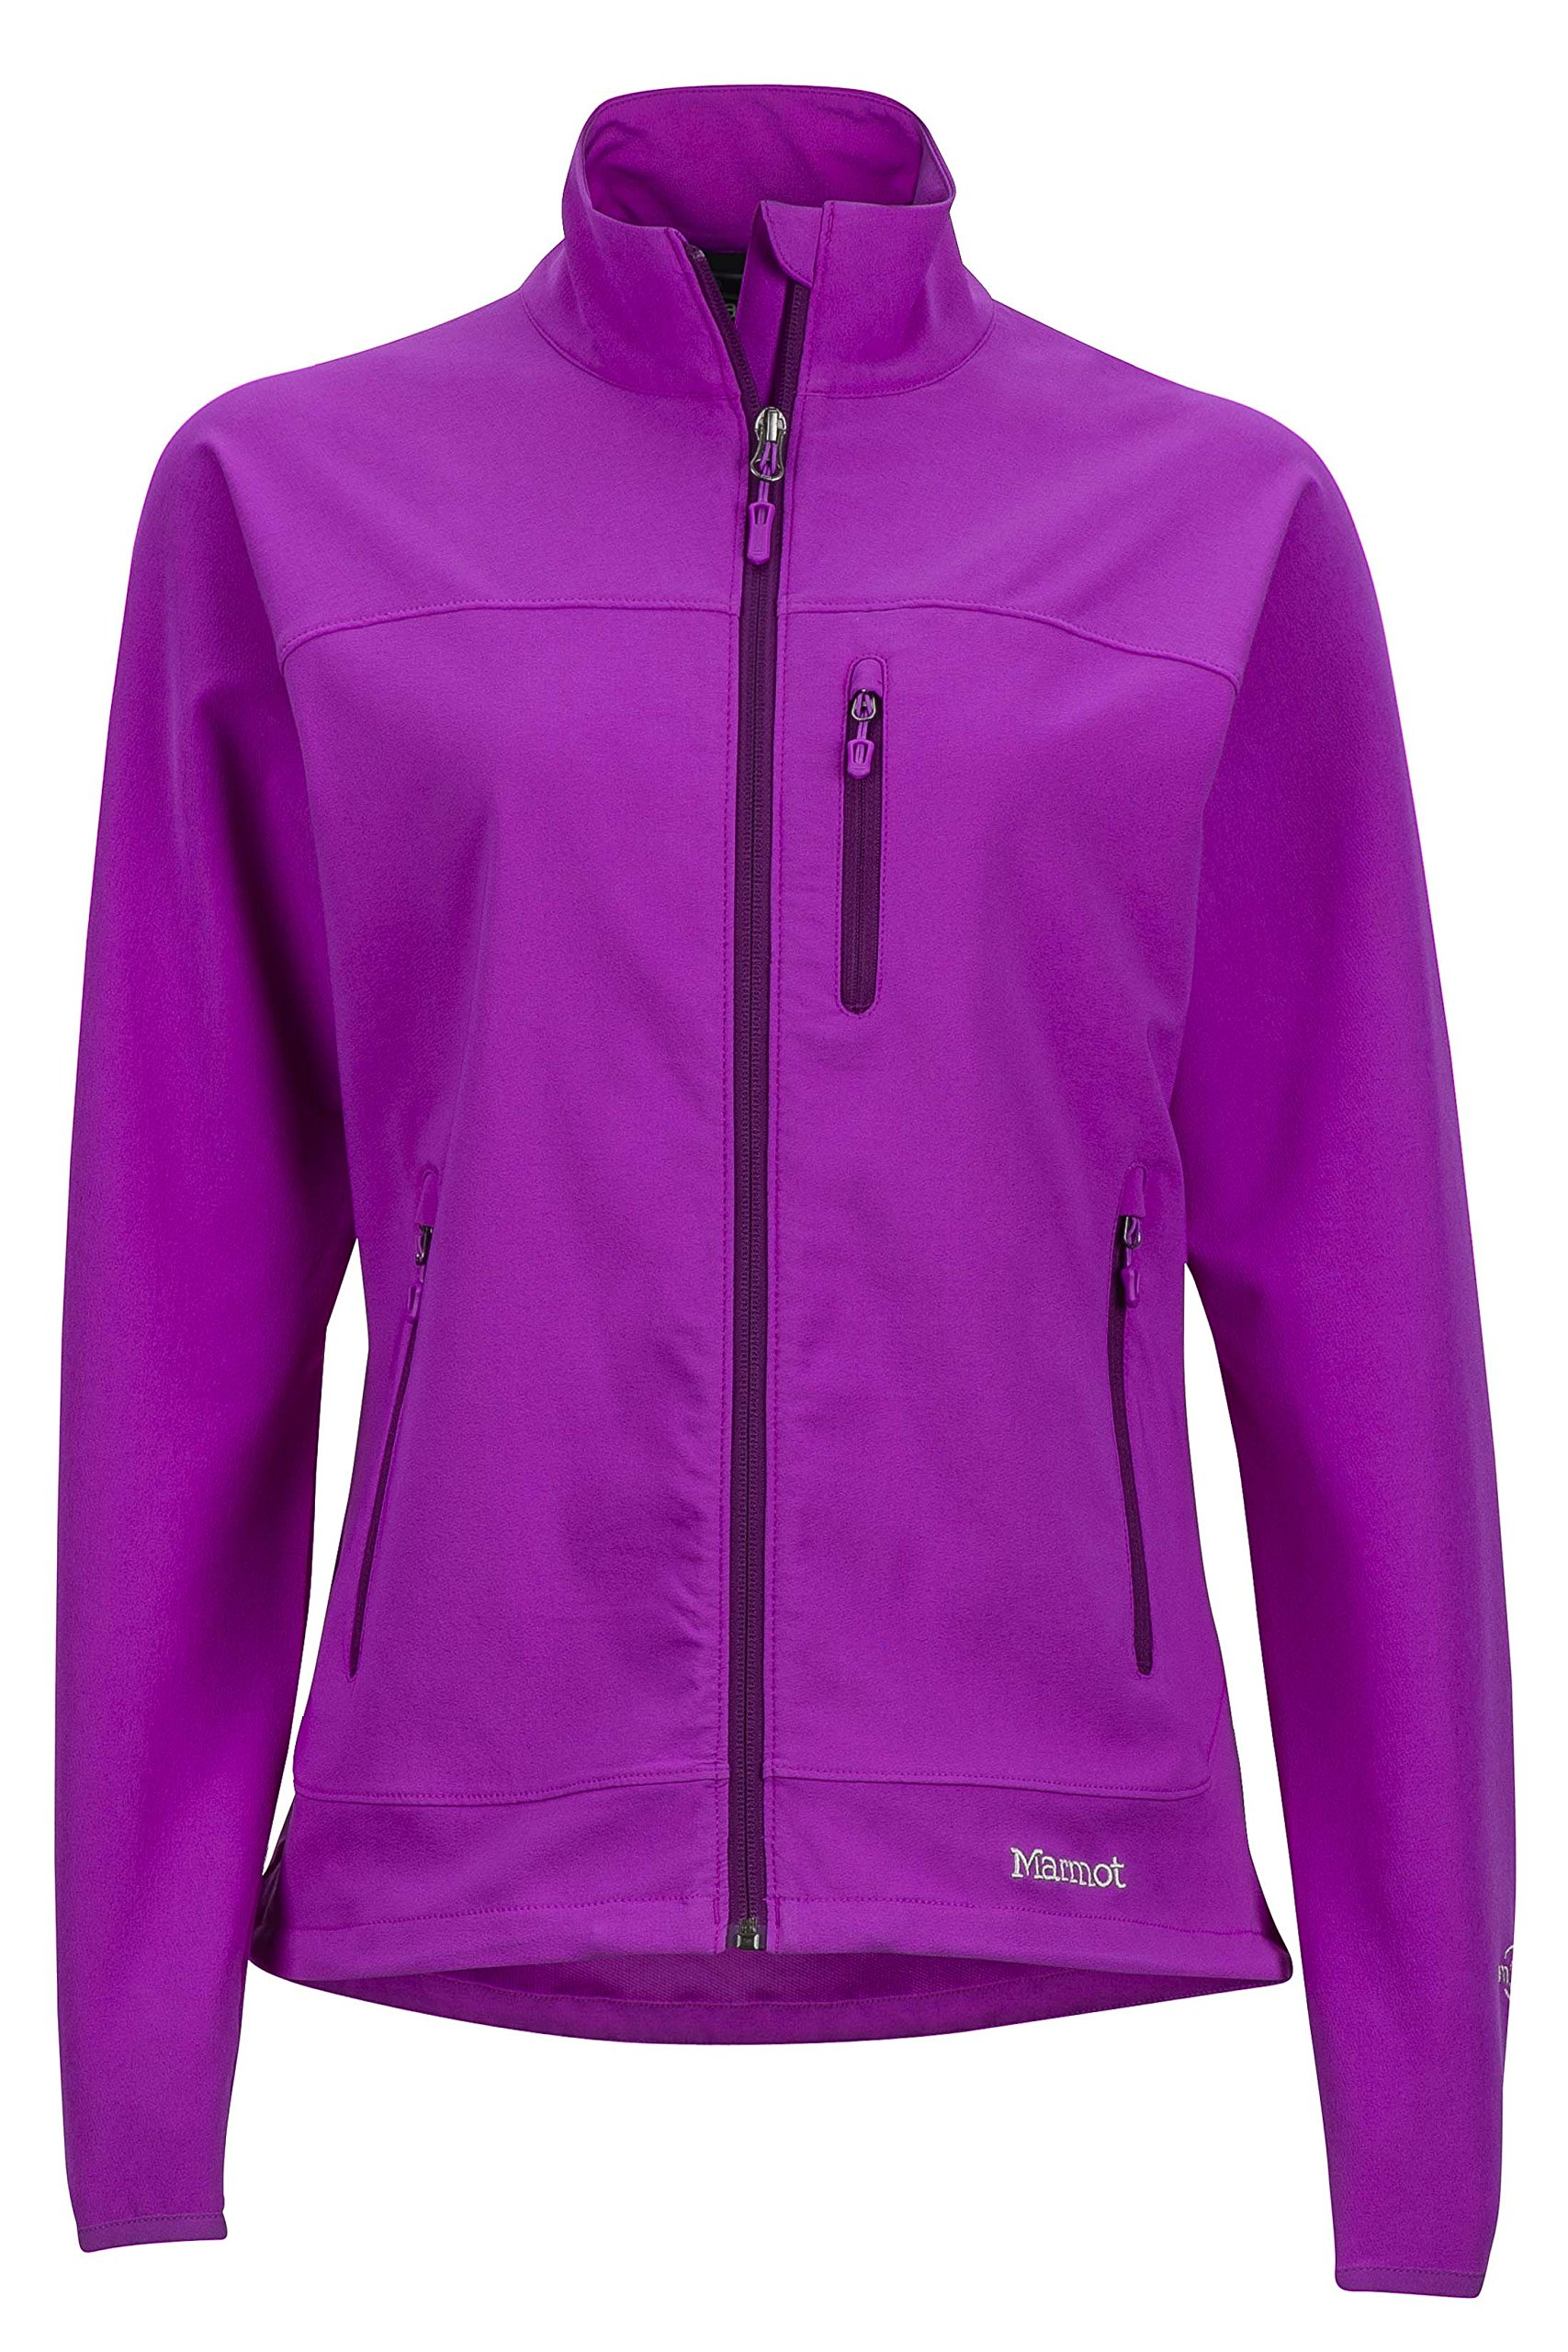 Marmot Women's Tempo Softshell Jacket, Neon Berry, Medium by Marmot